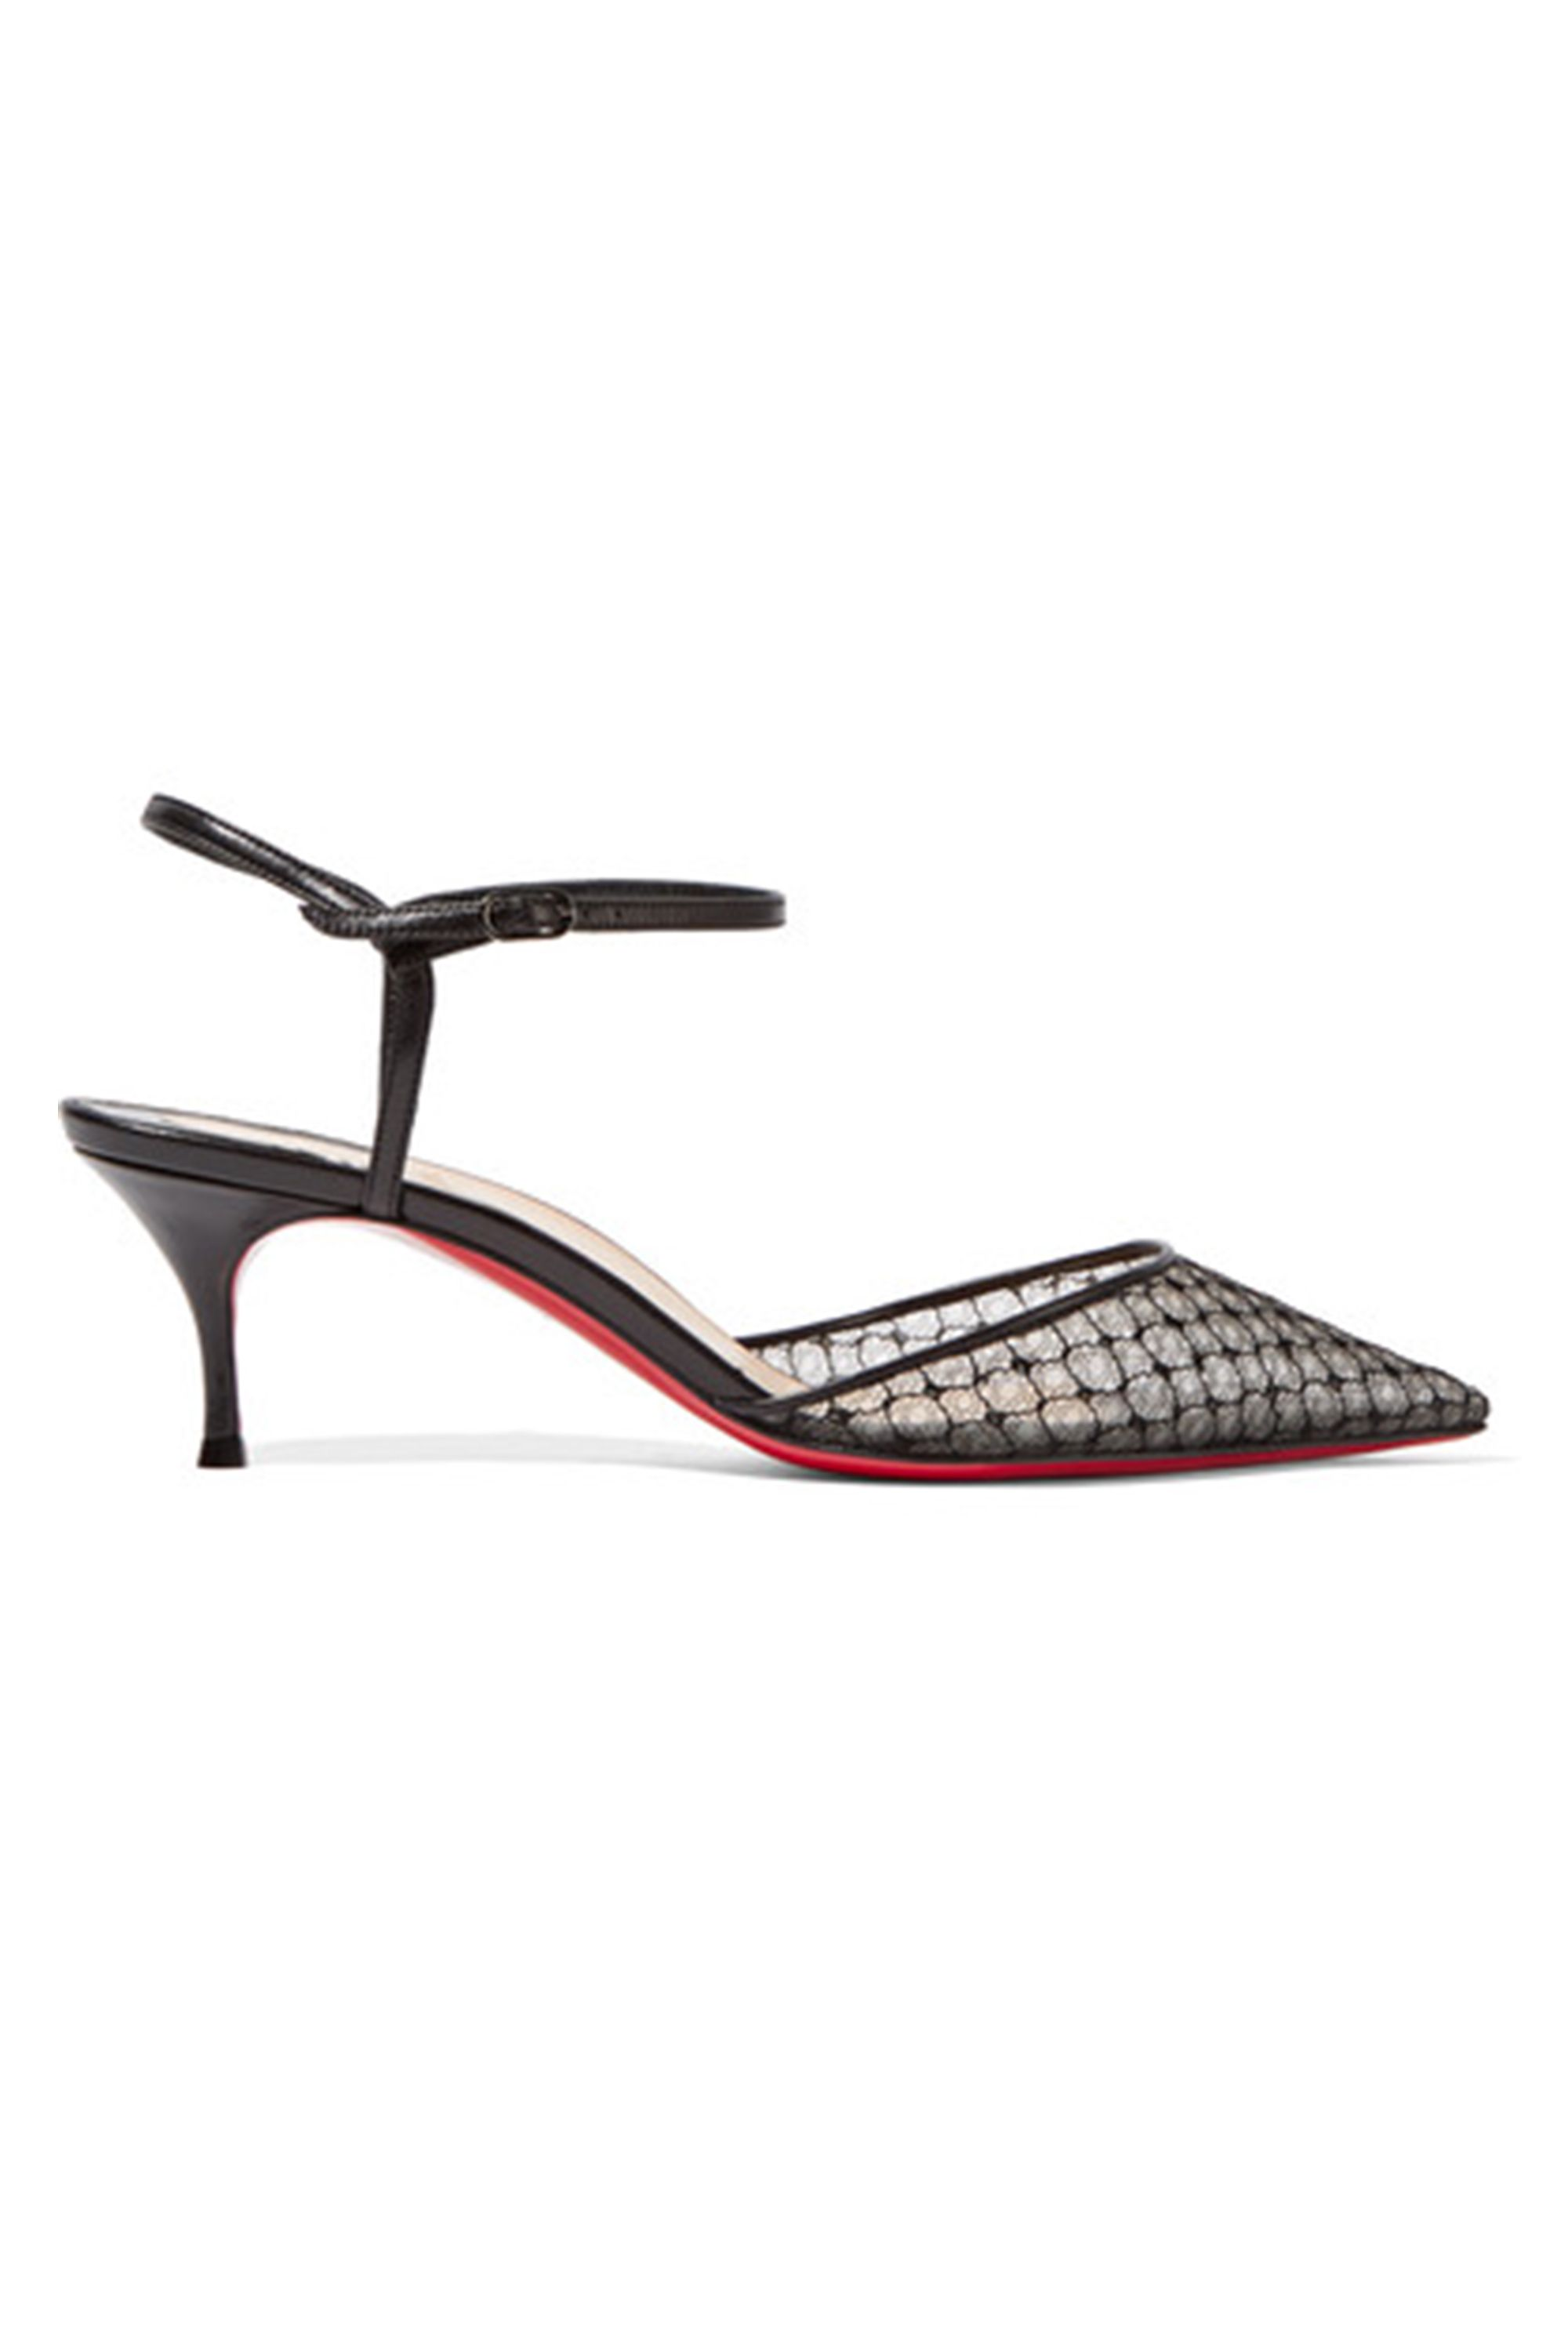 """<p> Christian Louboutin, Riverina<br> 55 leather-trimmed embroidered mesh pumps, $825,<a href=""""https://www.net-a-porter.com/us/en/product/705077/Christian_Louboutin/riverina-55-leather-trimmed-embroidered-mesh-pumps"""">net-a-porter.com</a></p><p><span class=""""redactor-invisible-space"""" data-verified=""""redactor"""" data-redactor-tag=""""span"""" data-redactor-class=""""redactor-invisible-space""""></span></p>"""